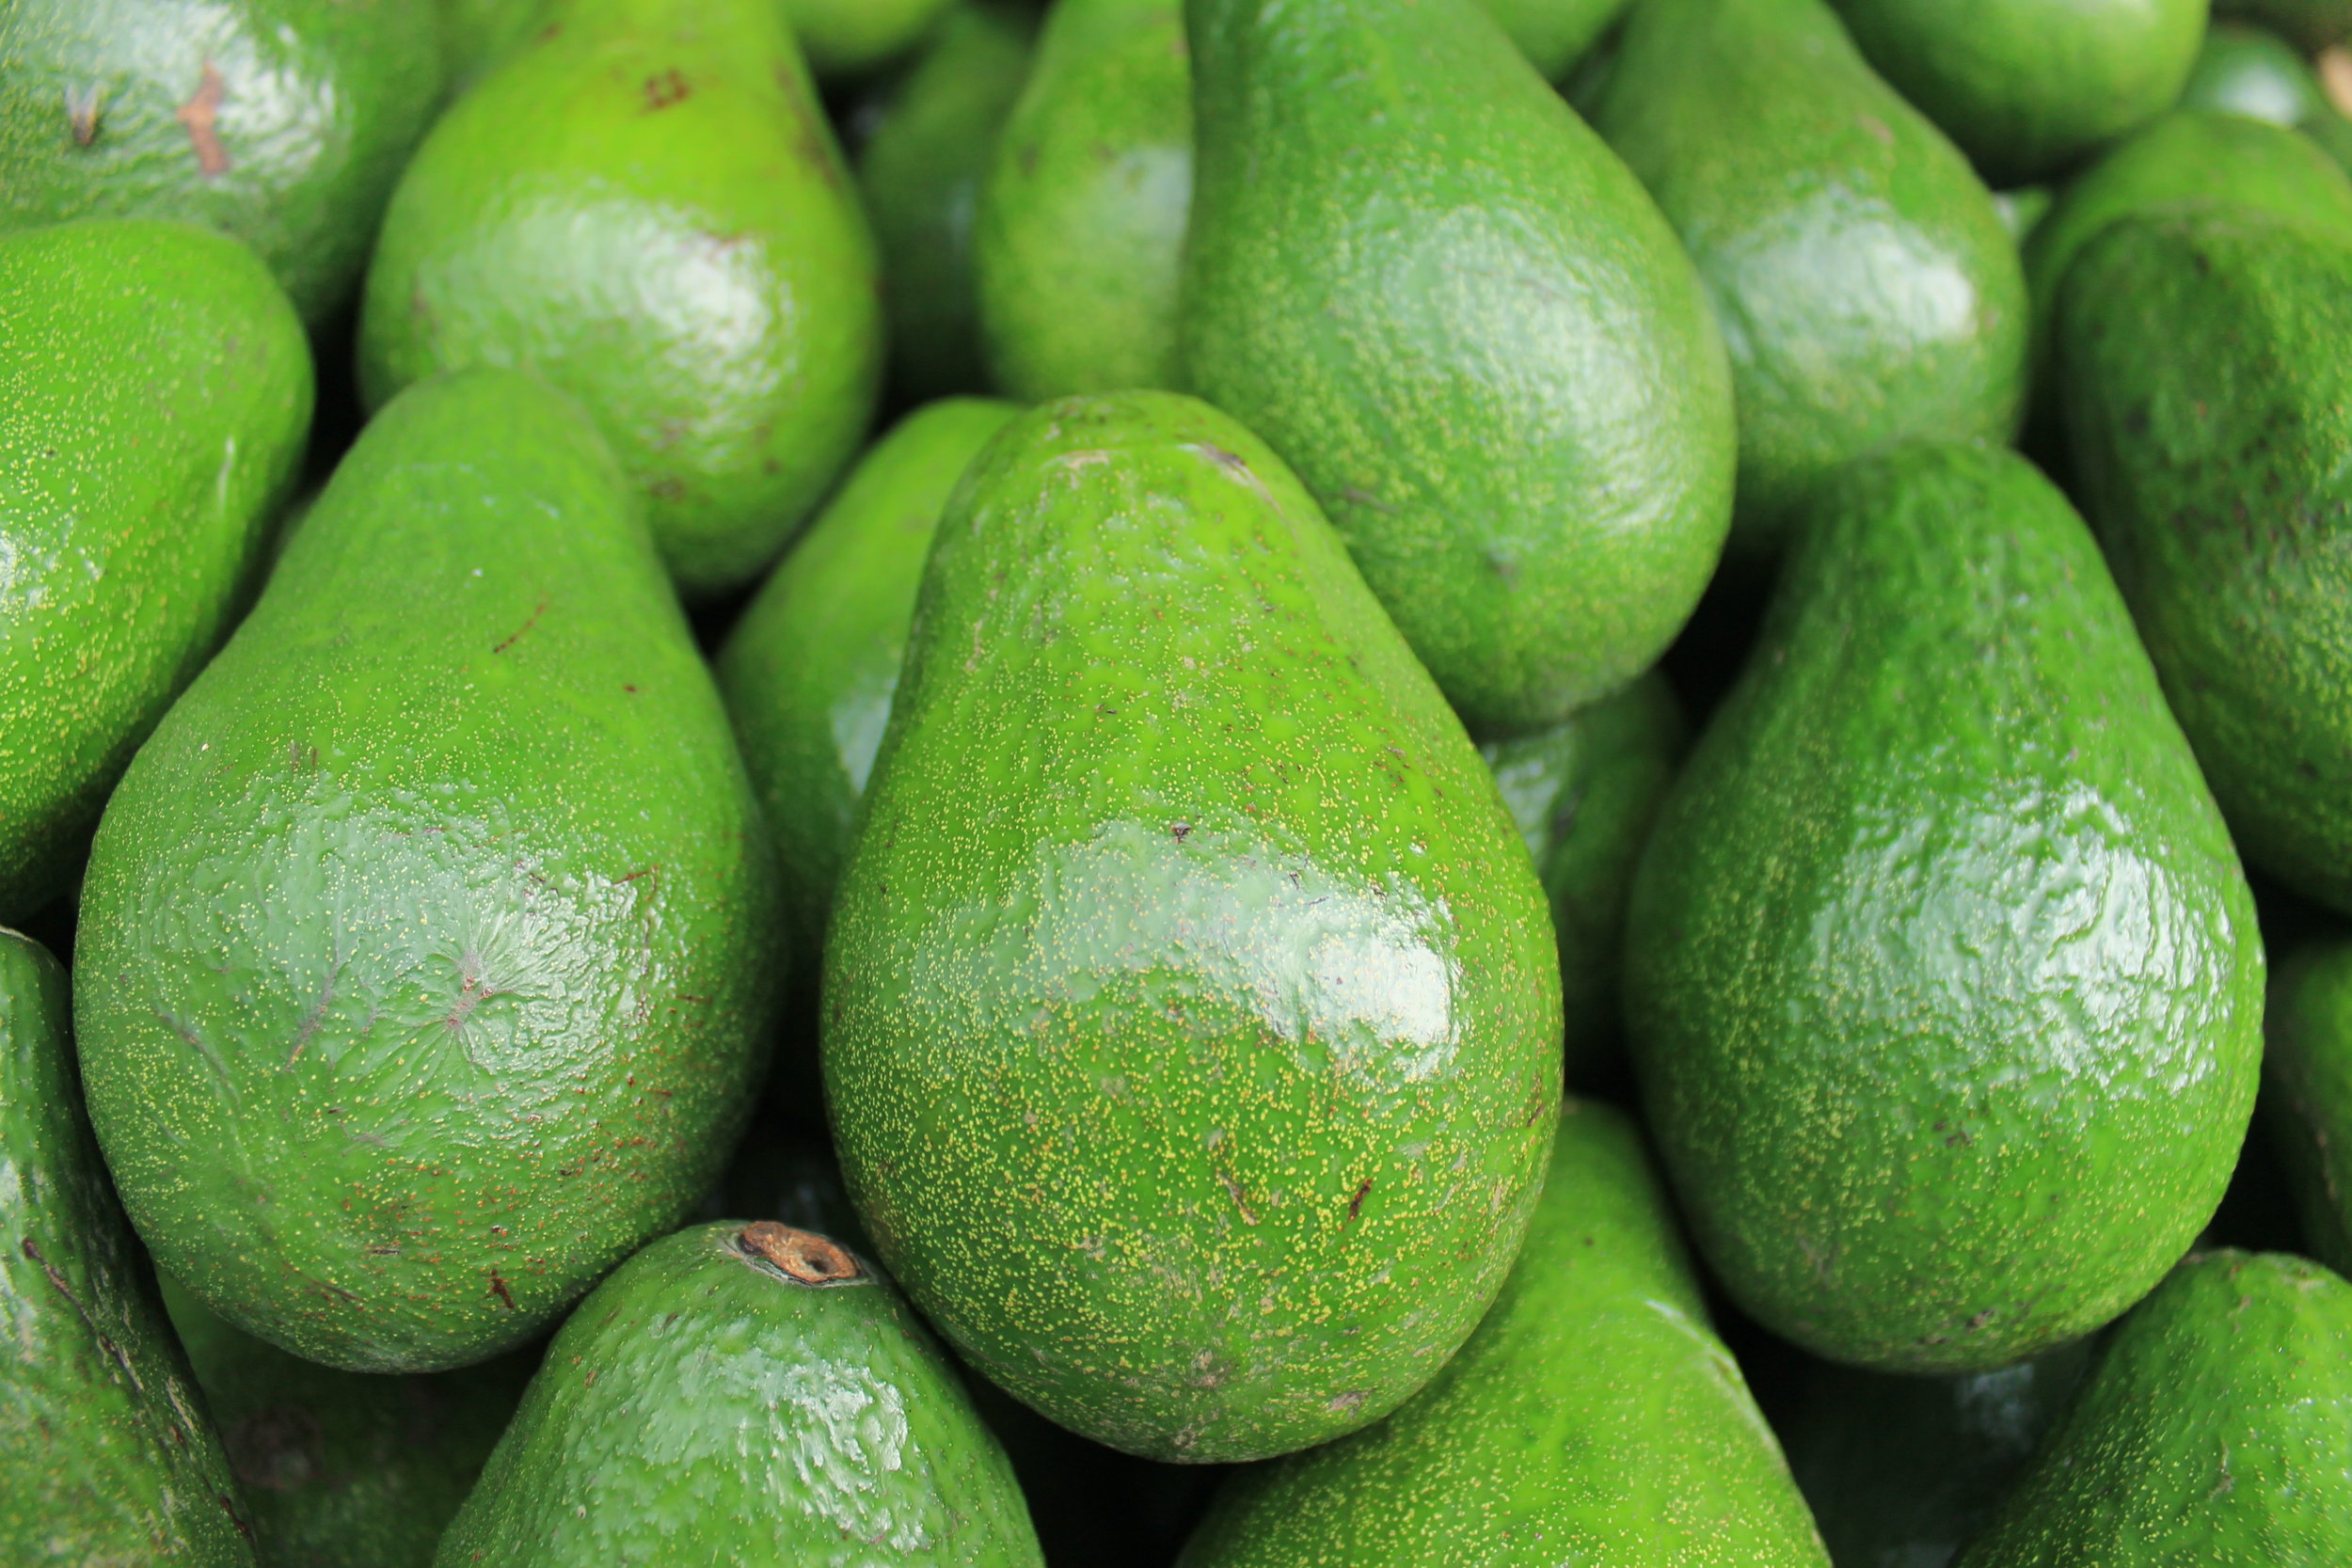 Avocado - Avocado's are a great source of Vitamins C, E, K, and B-6, as well as riboflavin, niacin, folate, pantothenic acid, magnesium, and potassium. Avocados have more potassium than bananas. Avocados are high in monounsaturated oleic acid, a heart-healthy fatty acid. They are also full of fiber which helps with weight loss and metabolic health.